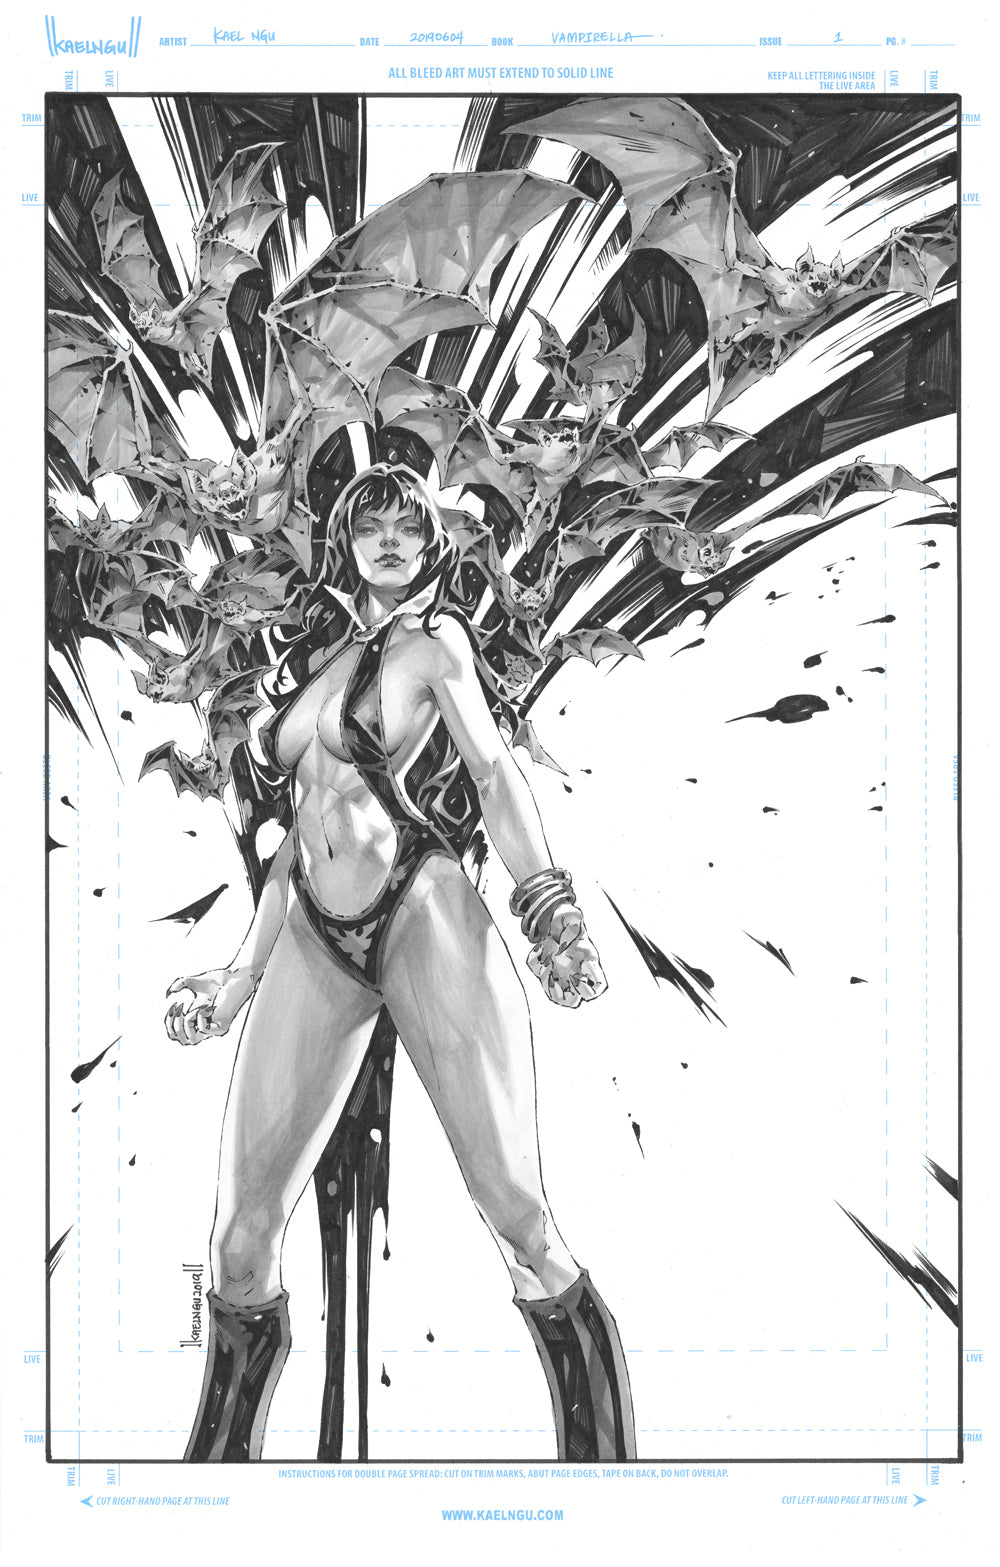 VAMPIRELLA #1 KAEL NGU ORIGINAL COVER ART